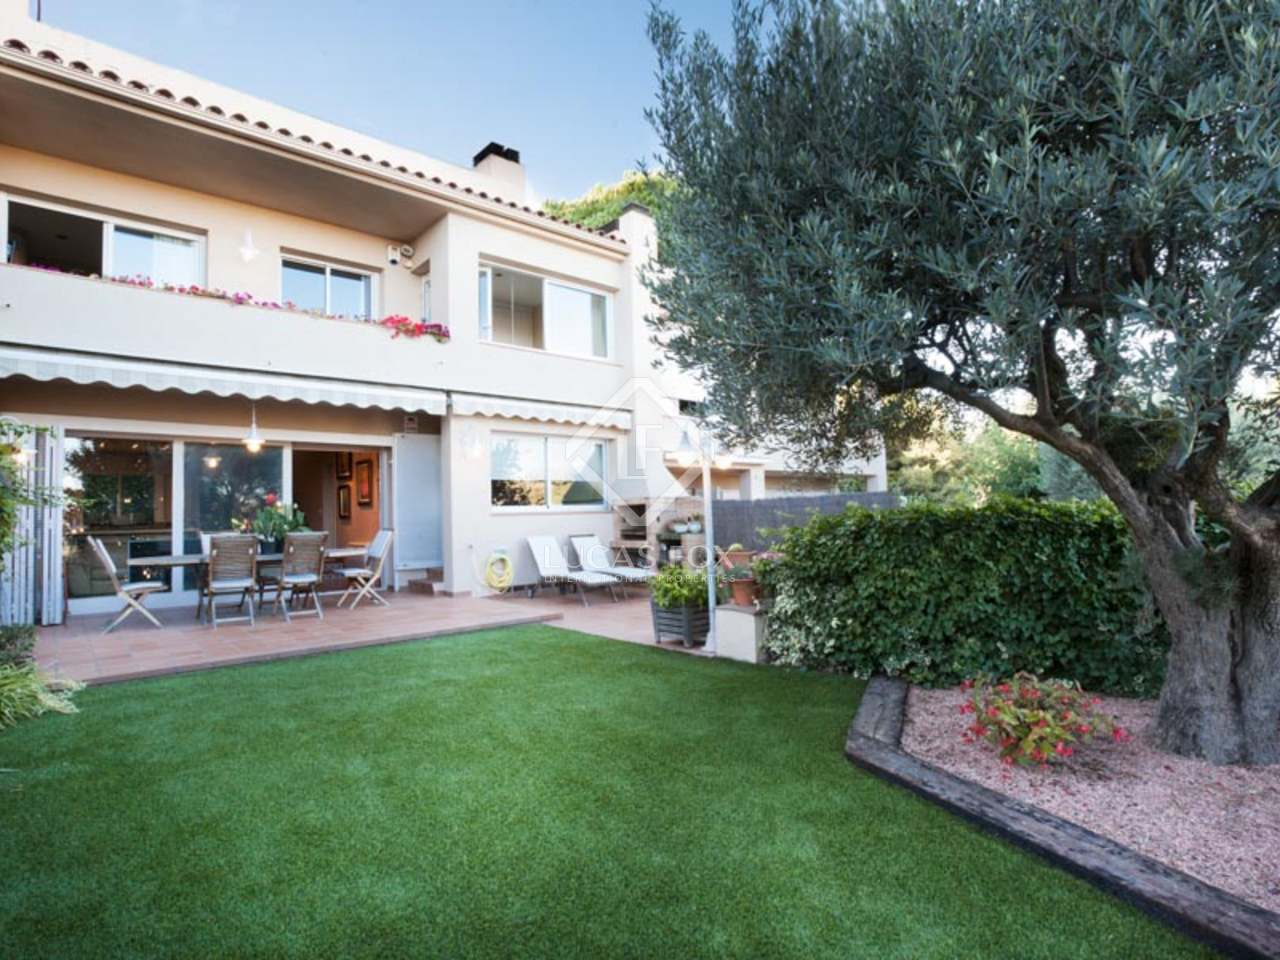 5 Bedroom Townhouse For Sale Near The Centre Of Alella